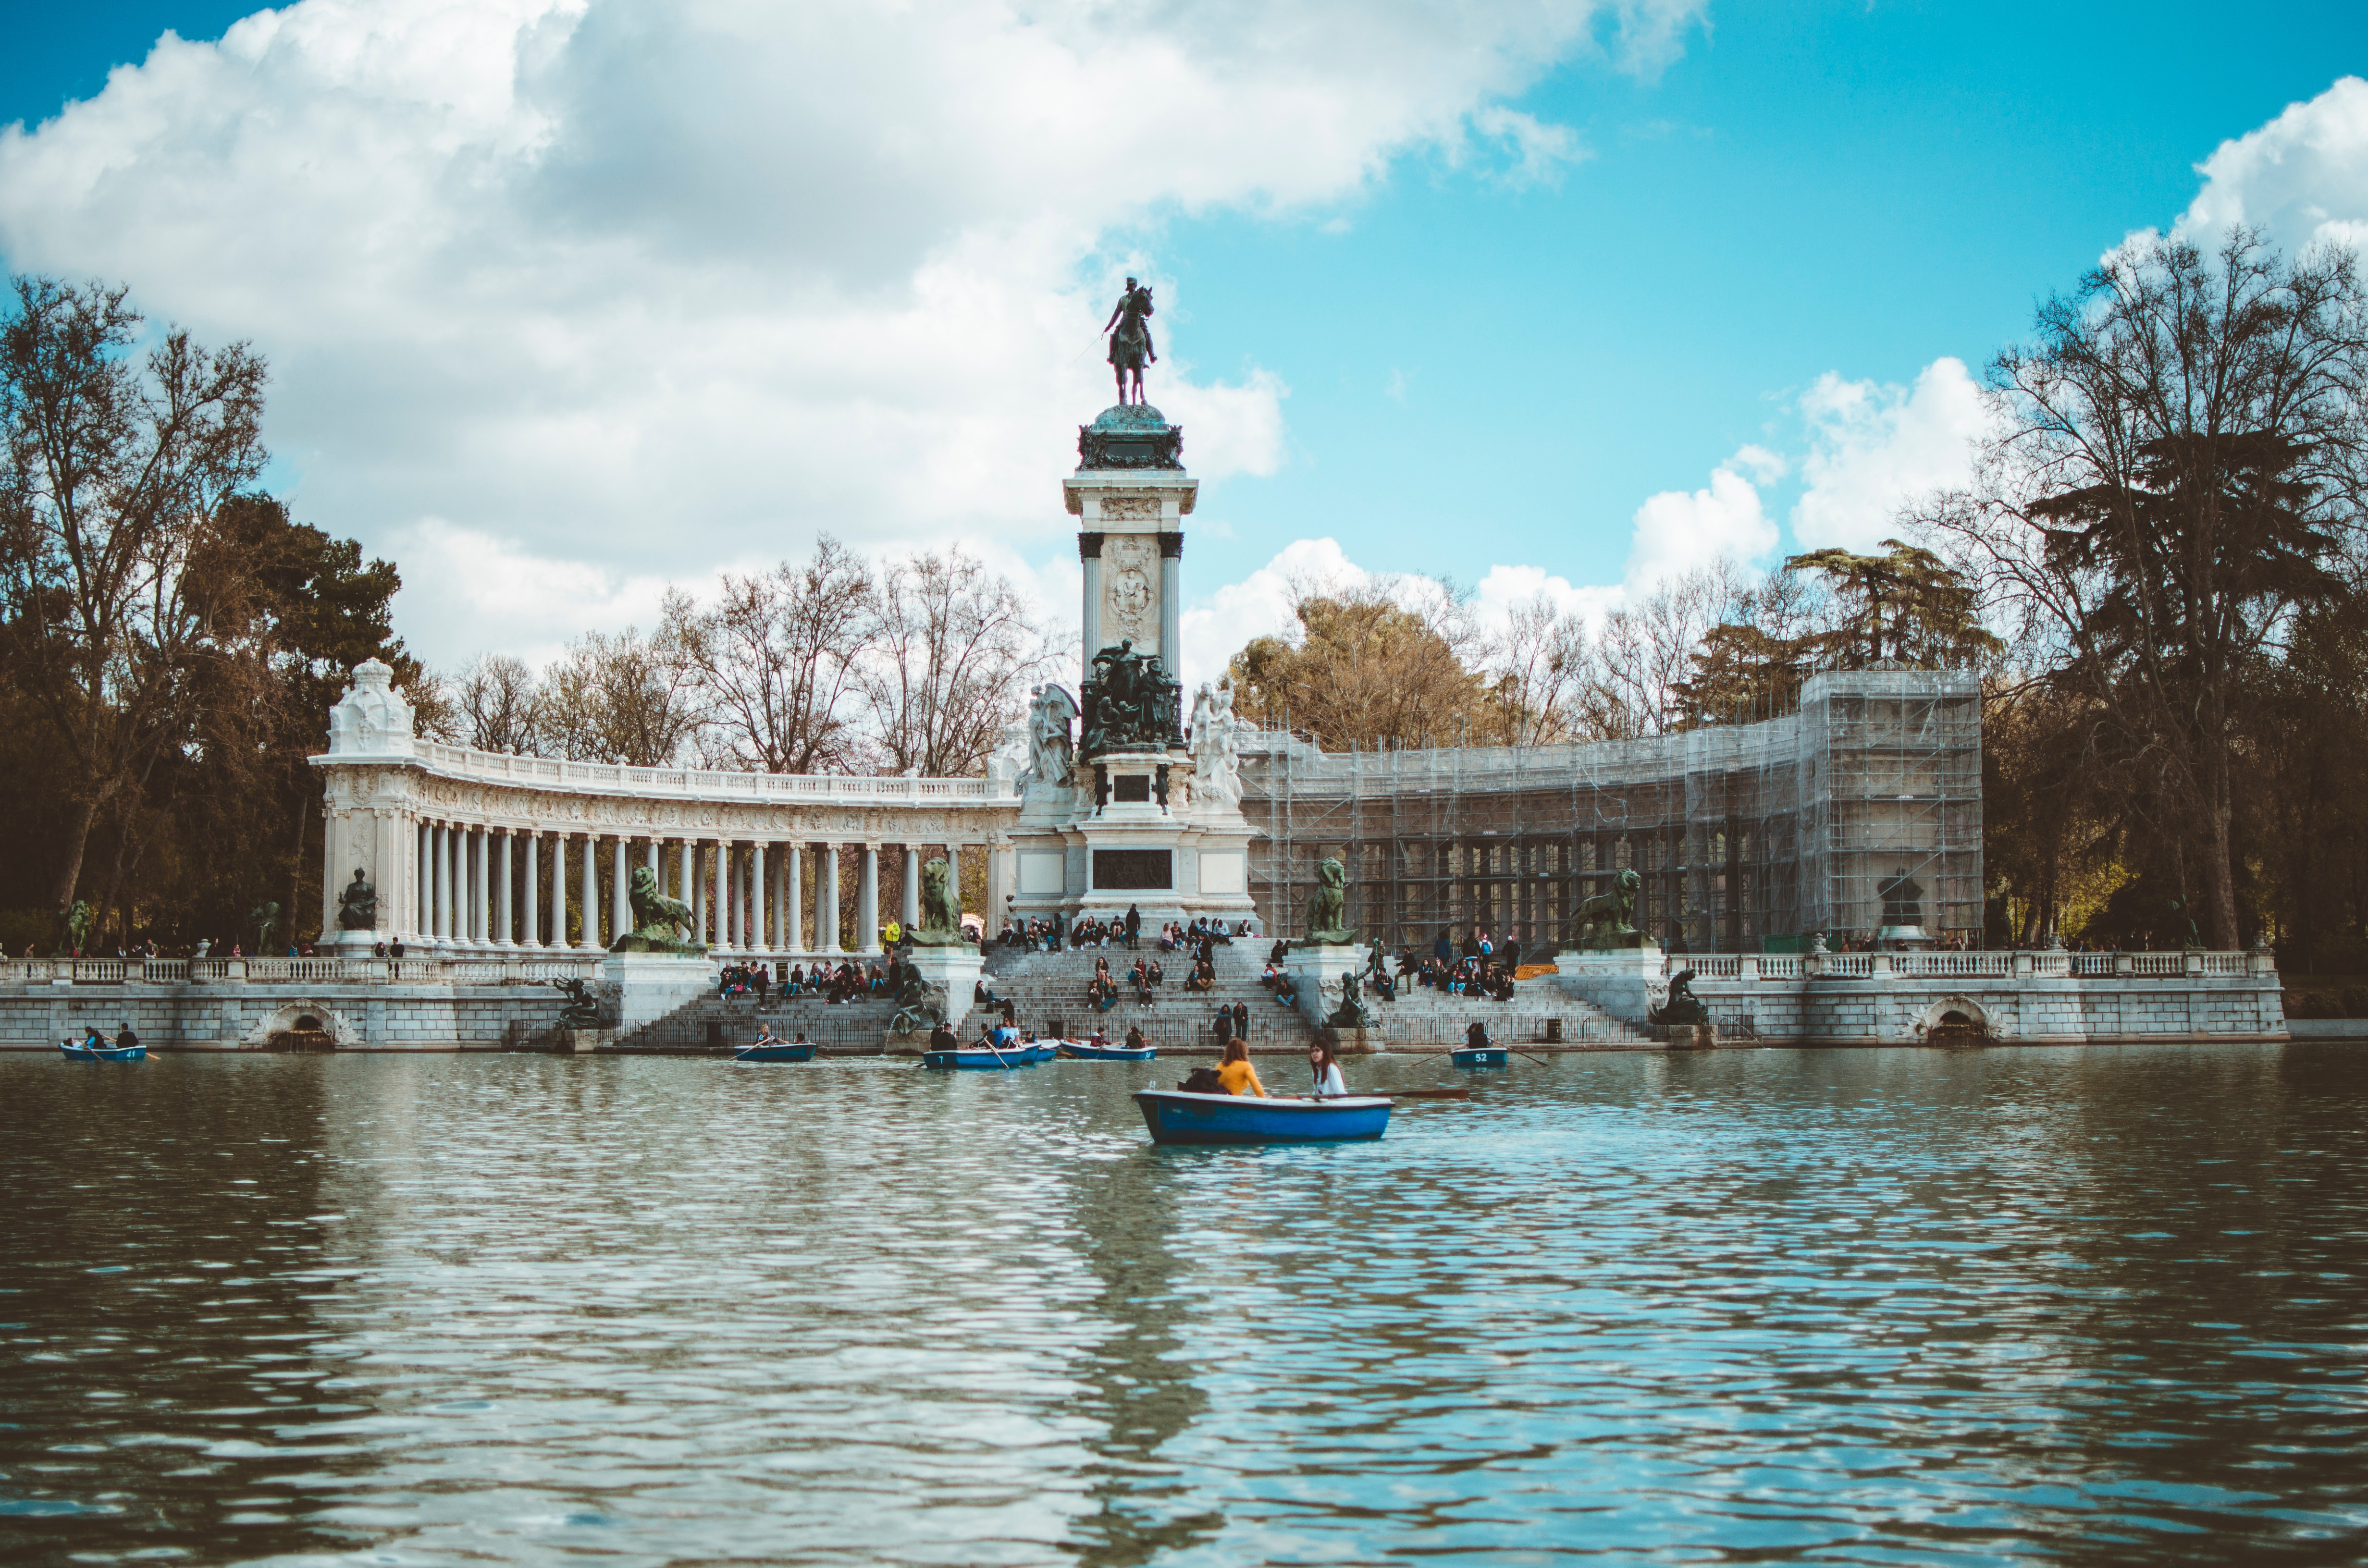 Boat in water and building with statue photo